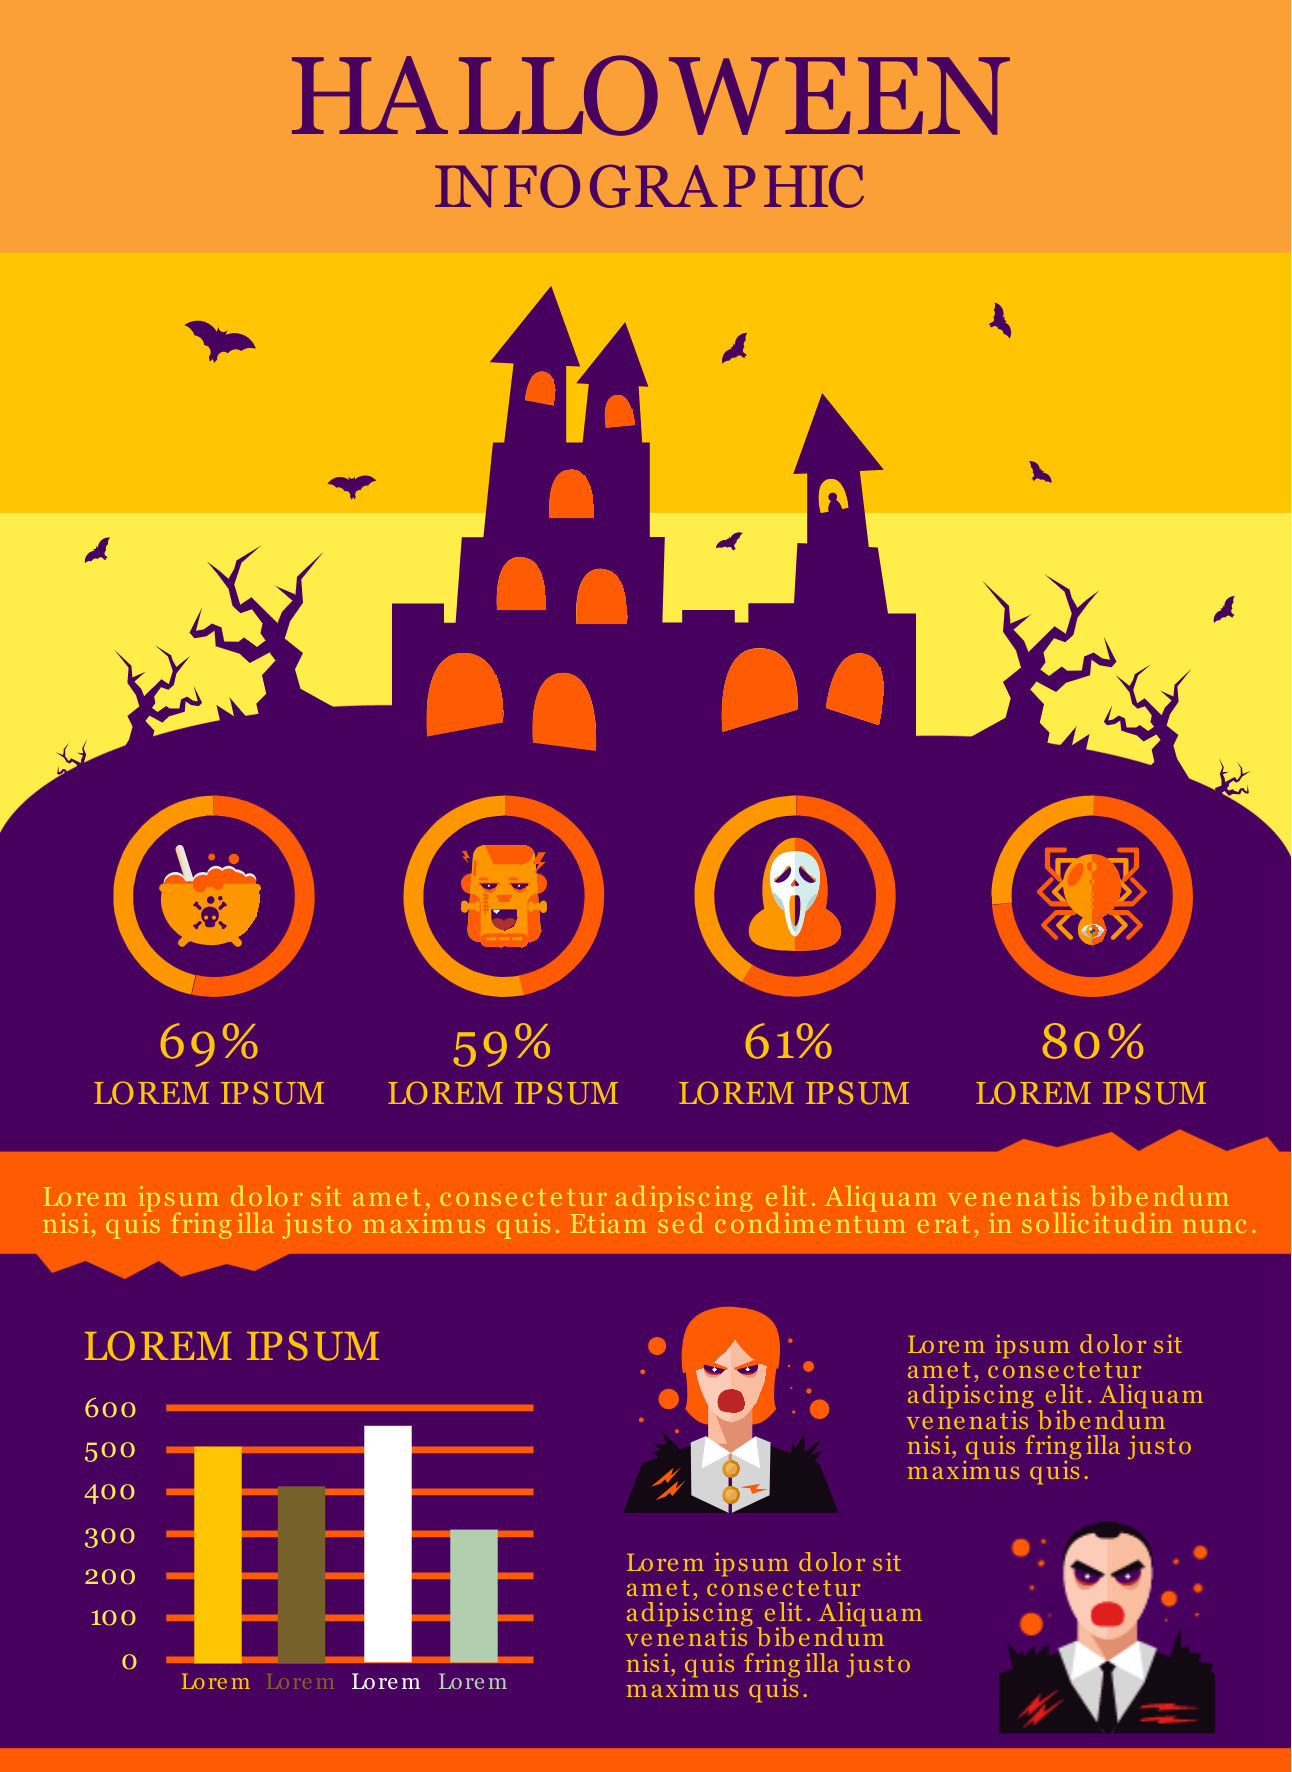 Halloween Infographic with a dracula icon and a spooky house